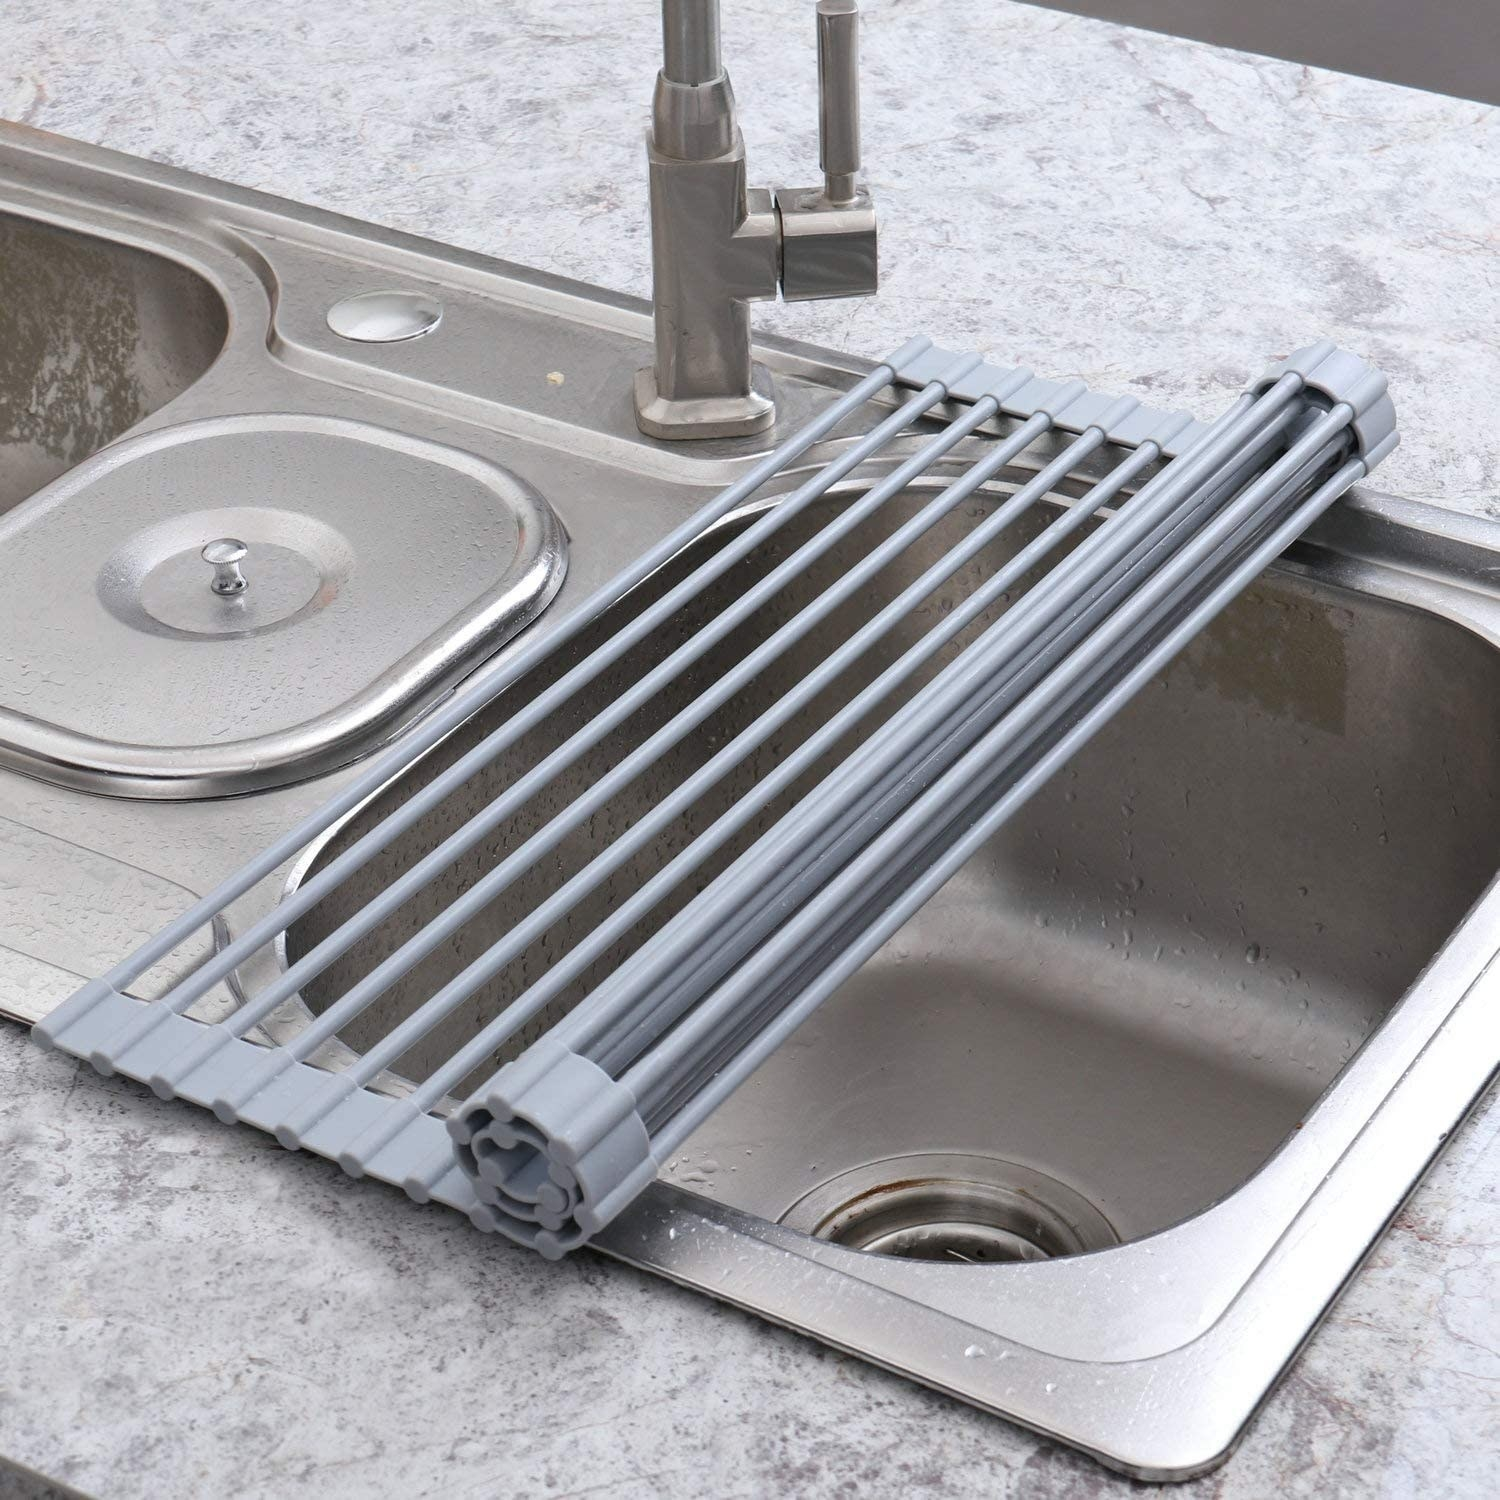 The roll-up drying rack over a sink